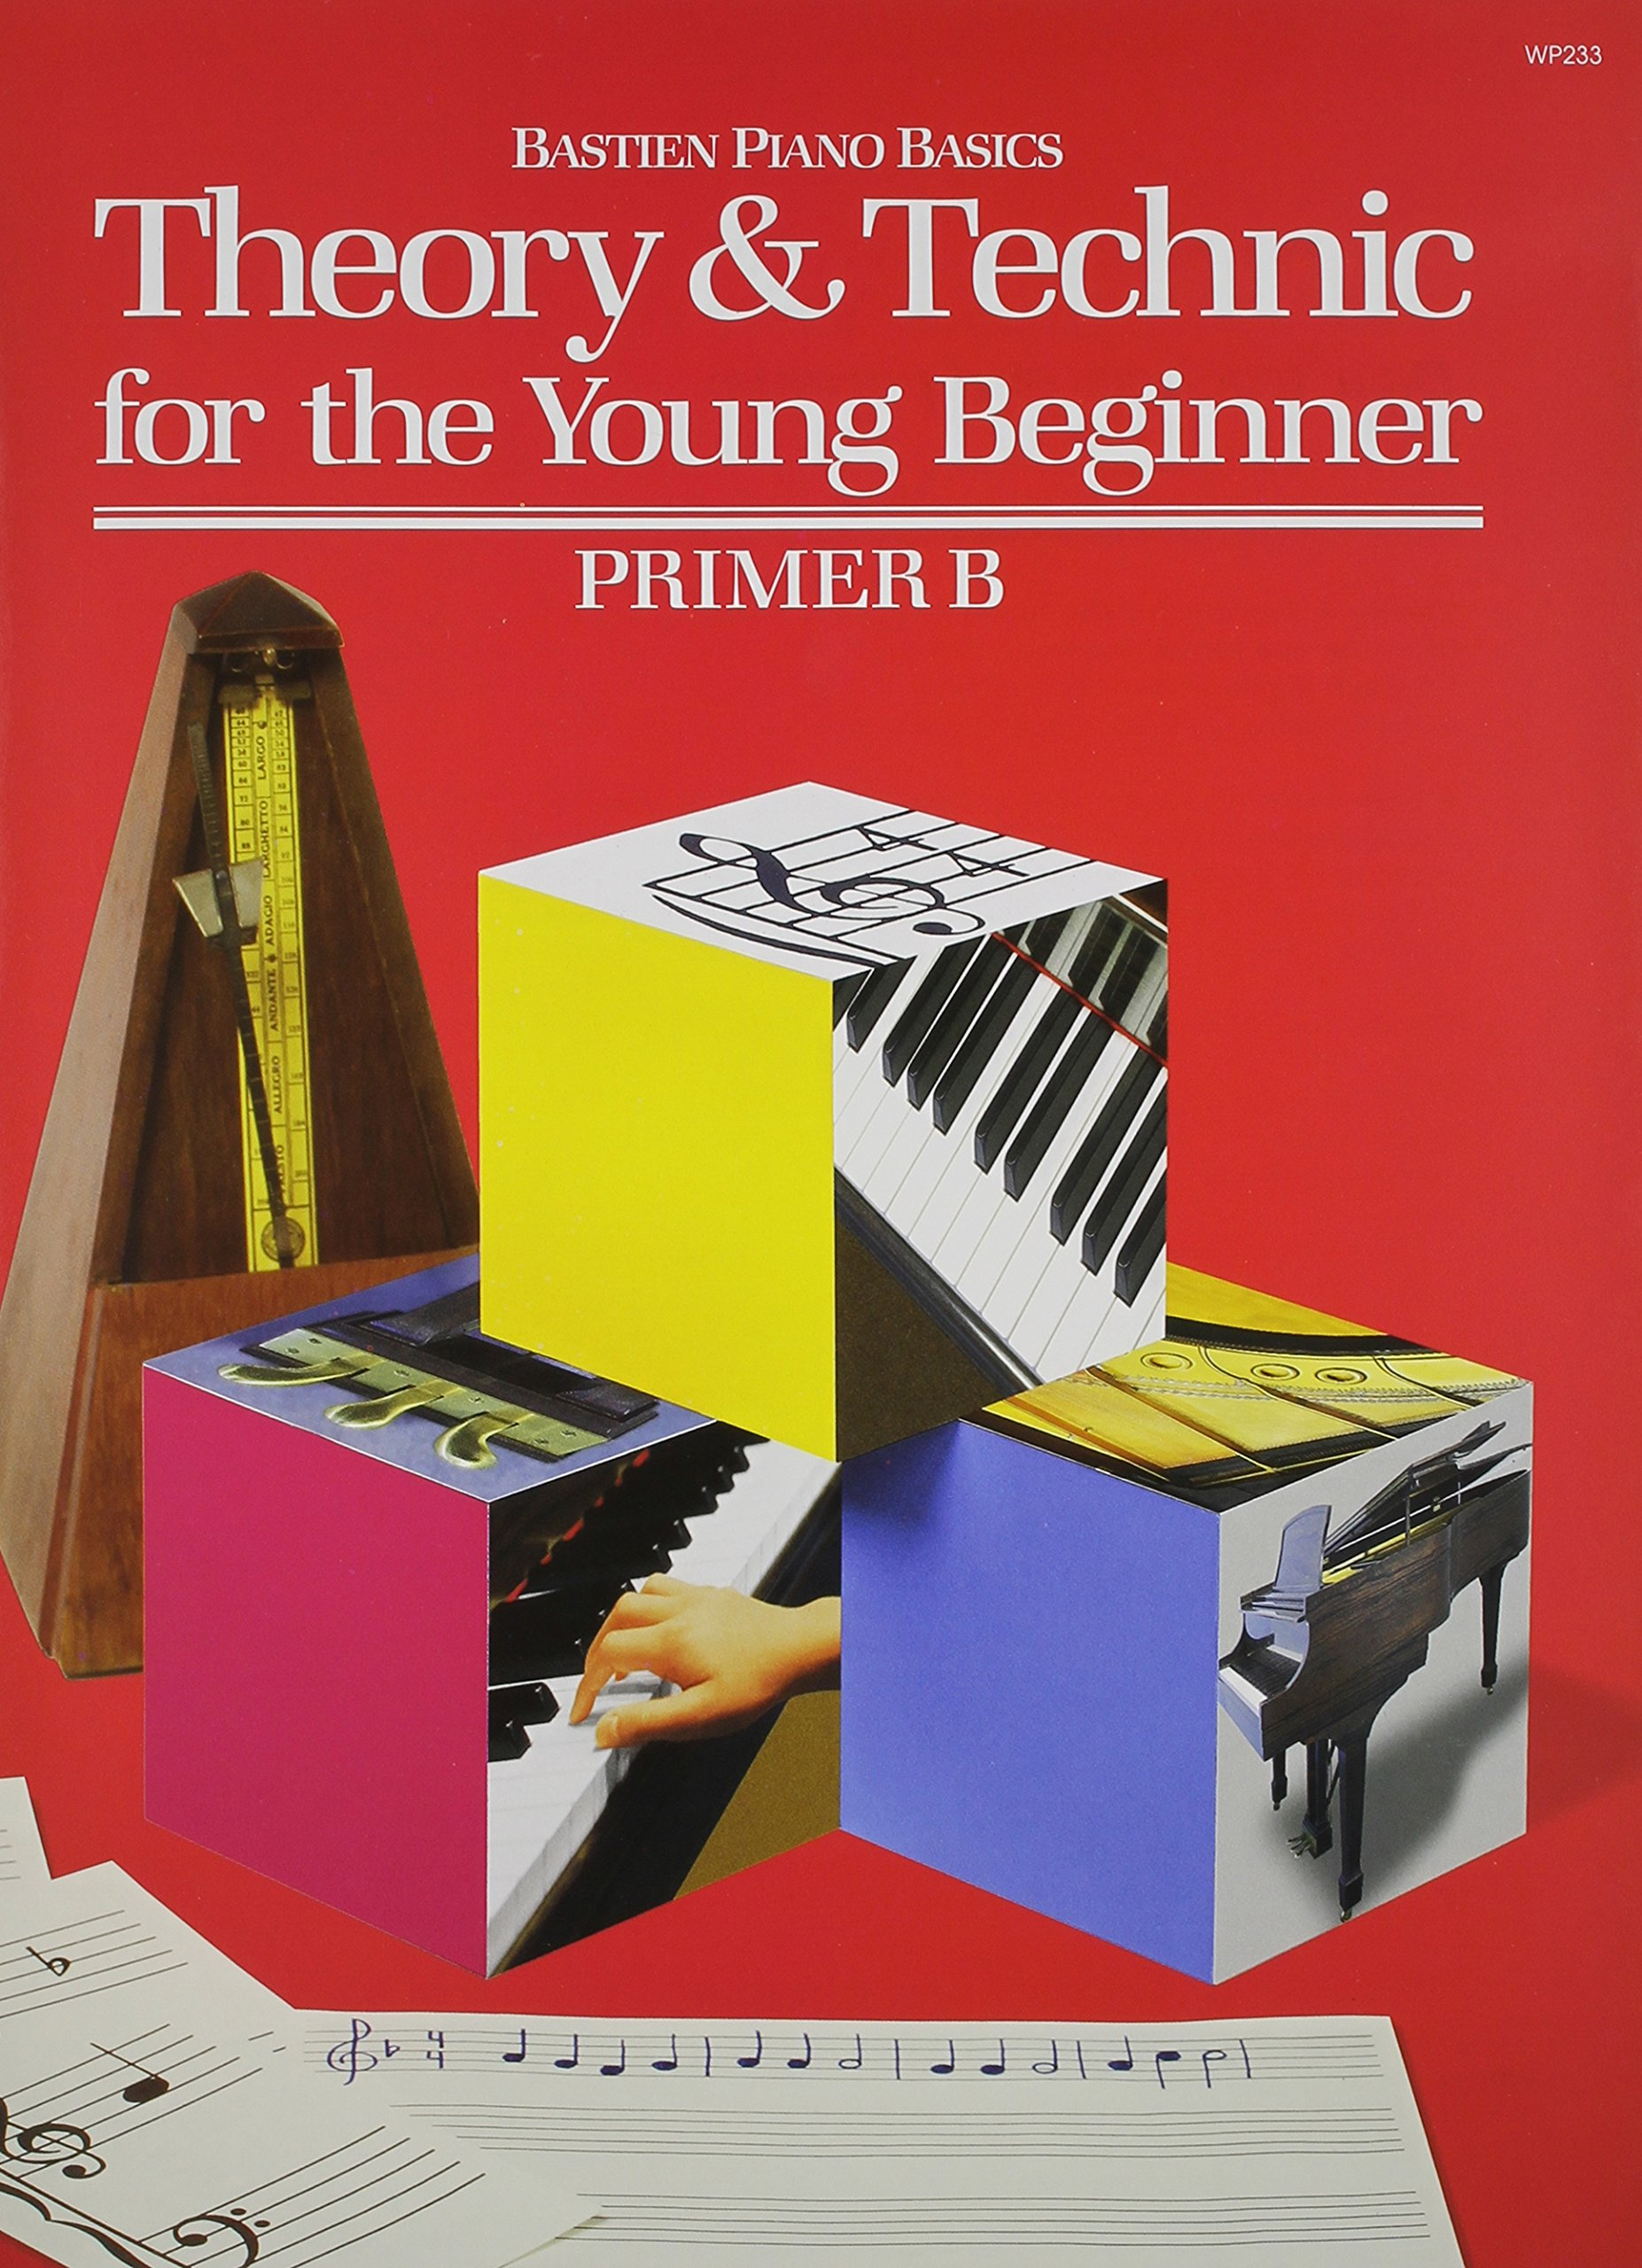 WP233 - Theory and Technic for the Young Beginner - Primer B